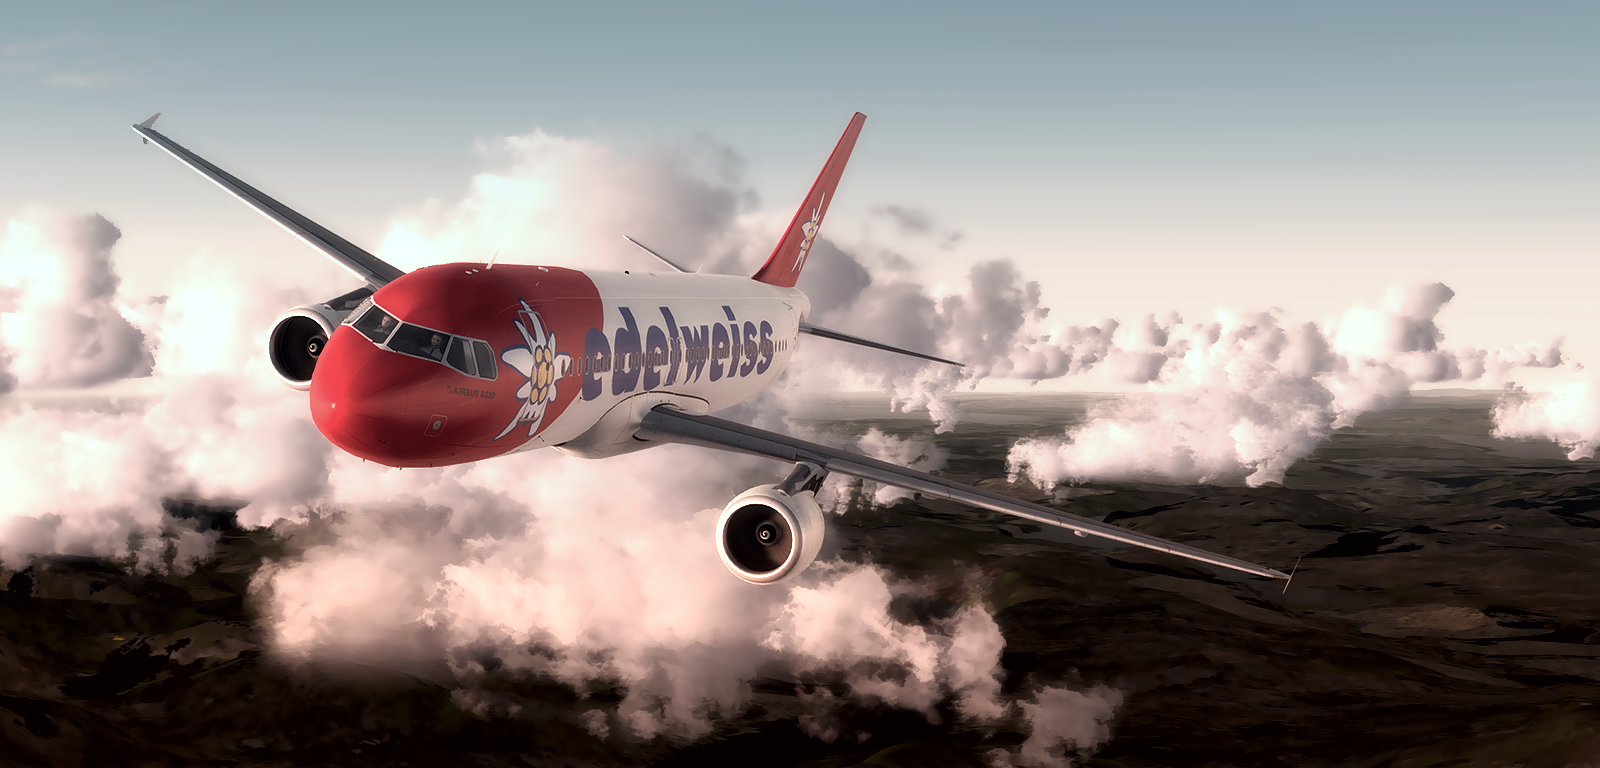 Surfing The Clouds Community Screenshots Orbx Community